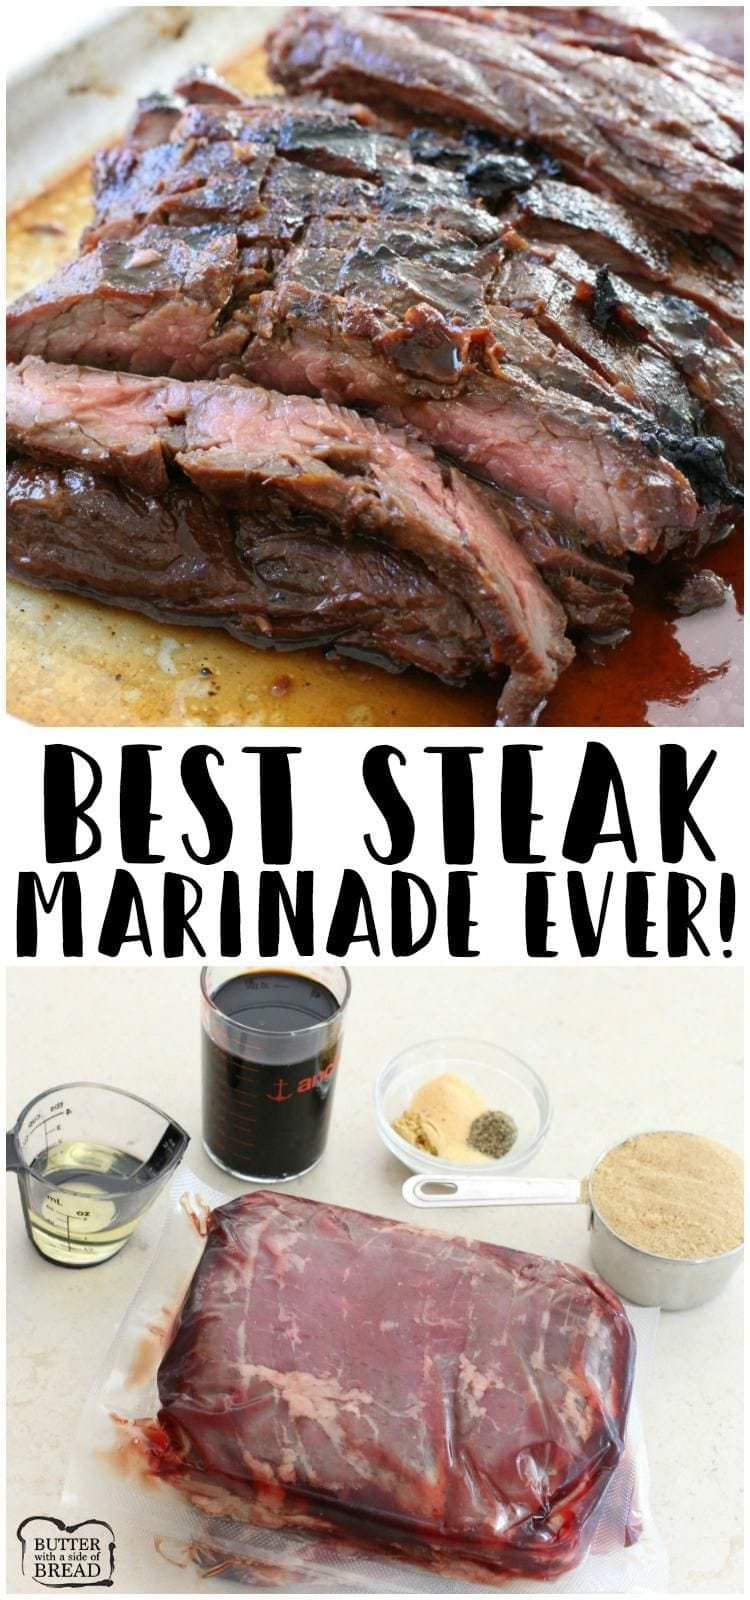 Steak marinade for the best steak of your life! Made with soy sauce, brown sugar, olive oil, ginger and garlic; you'll never taste a better steak marinade! #marinadeforskirtsteak